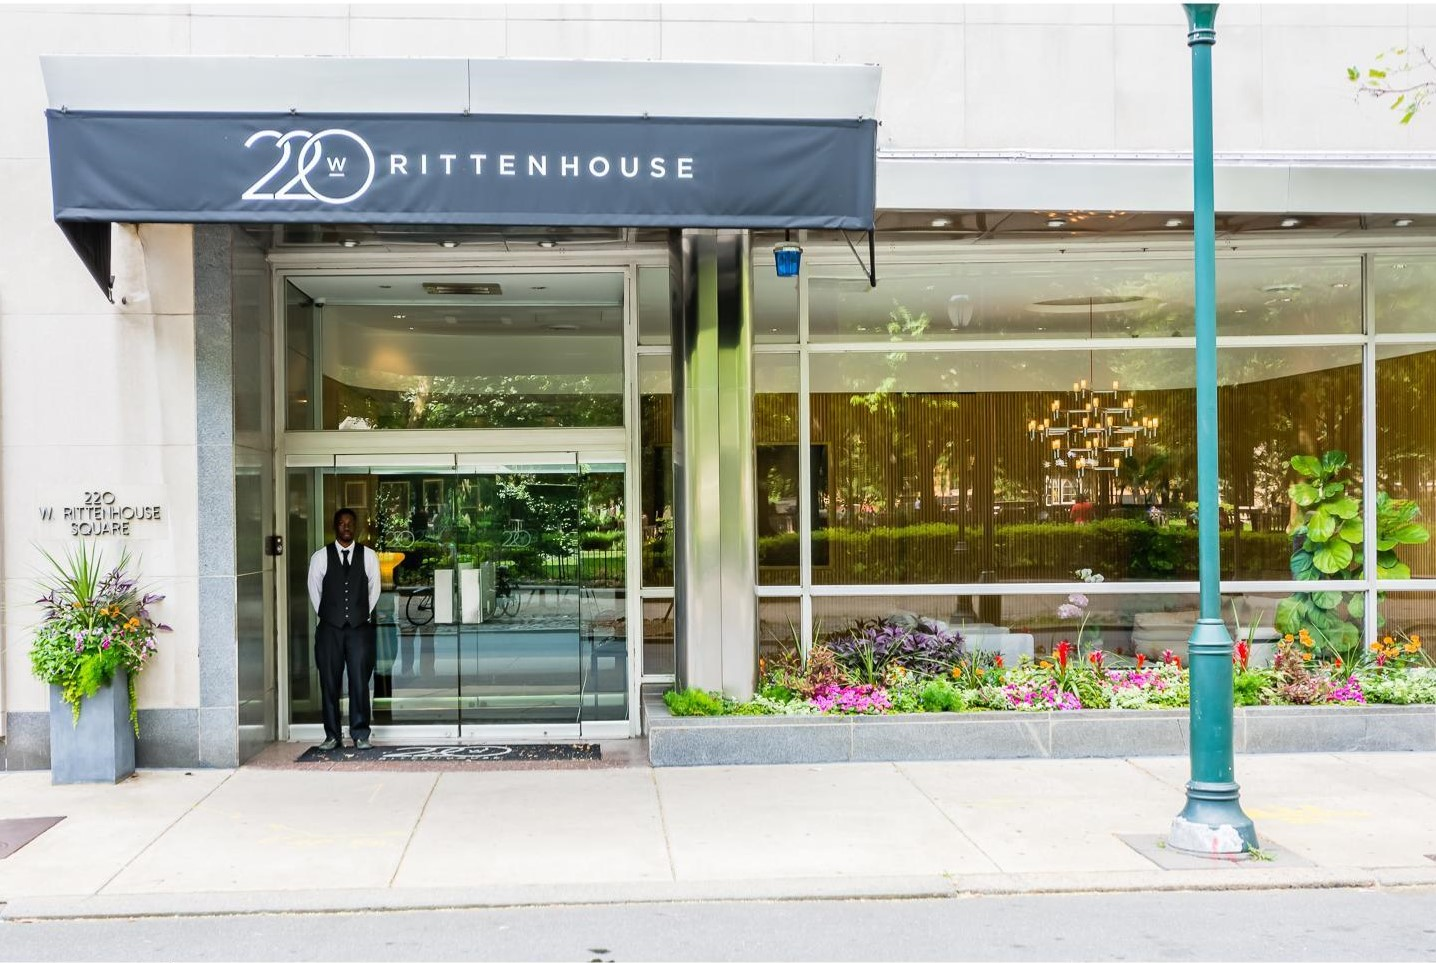 220 rittenhouse sq doorman and entrance.jpg